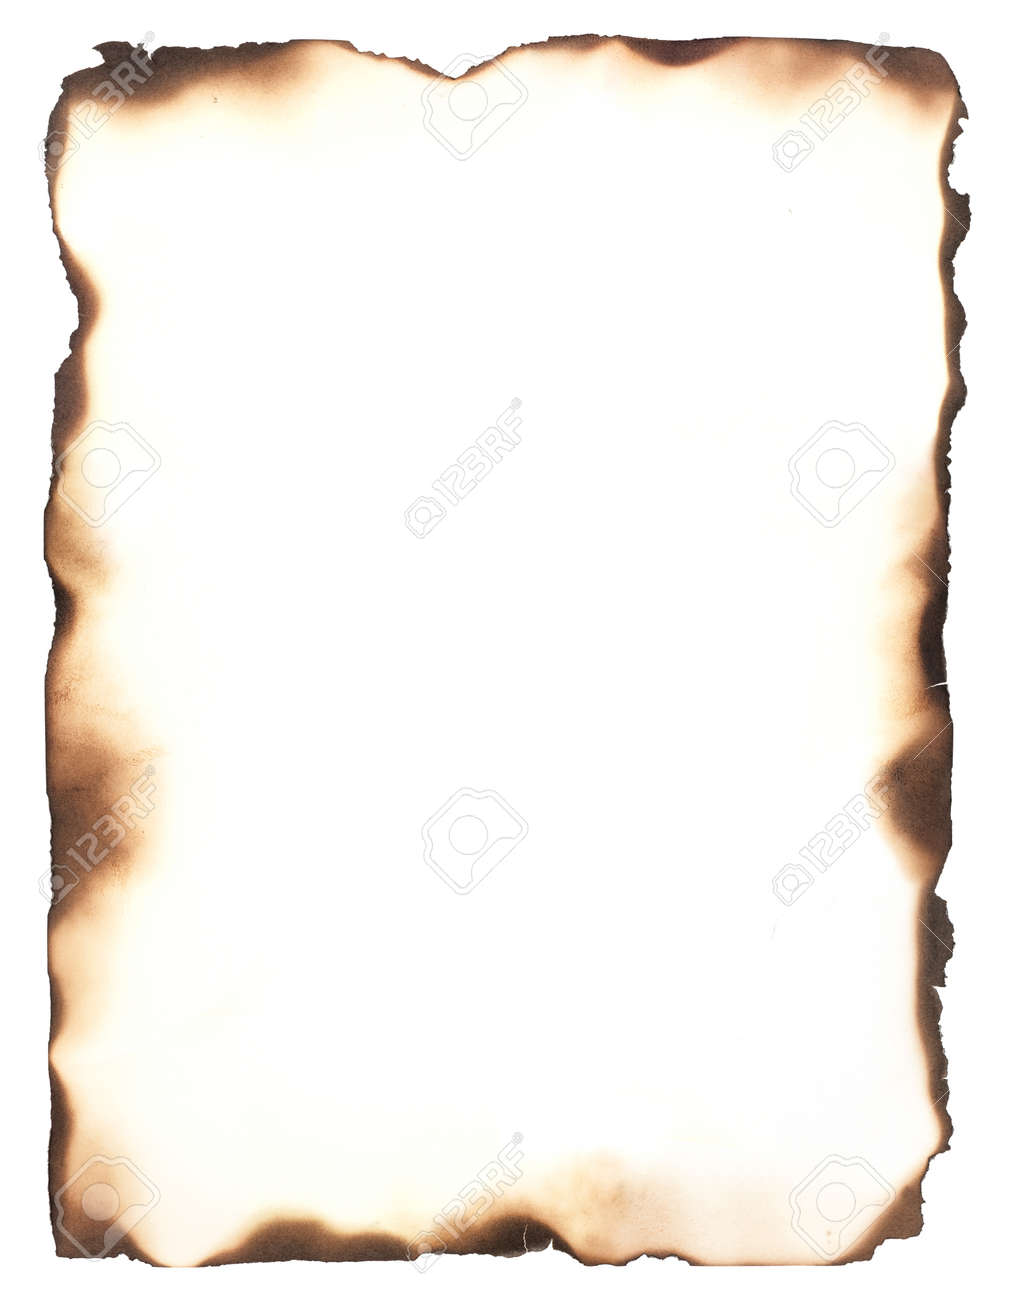 Burned Edges Isolated On White Use As A Frame Or Composite With ...